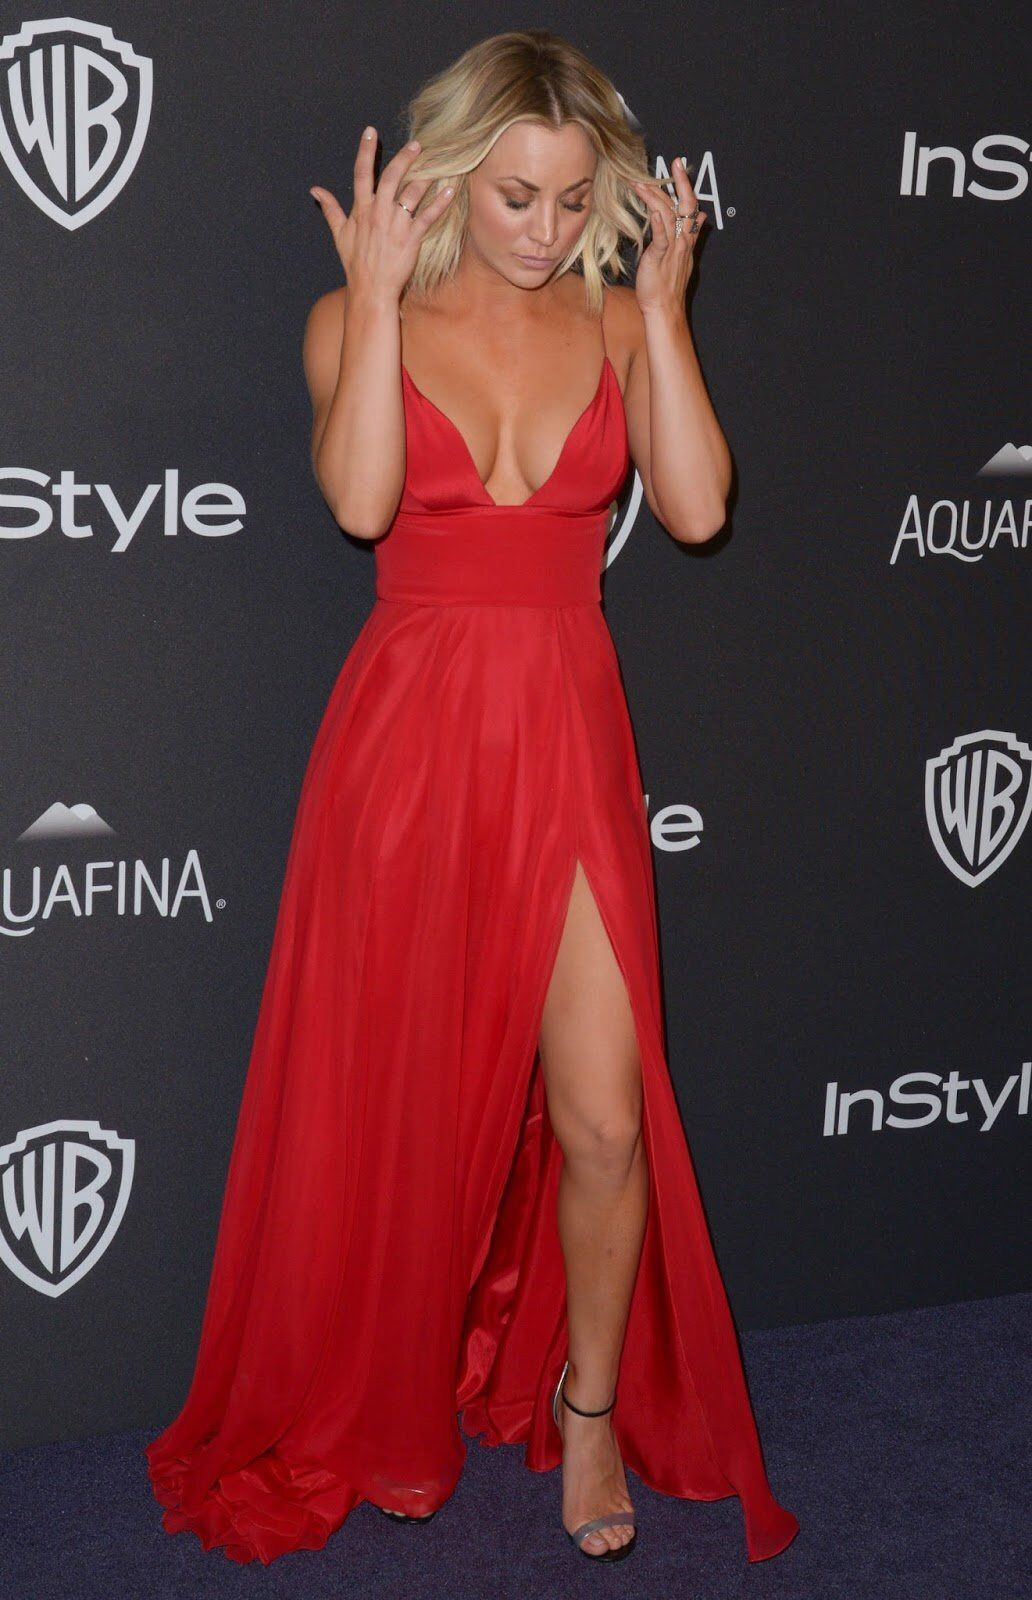 What One Hot Hot Foxy Mama Kaley Cuoco Dresses Red Dress